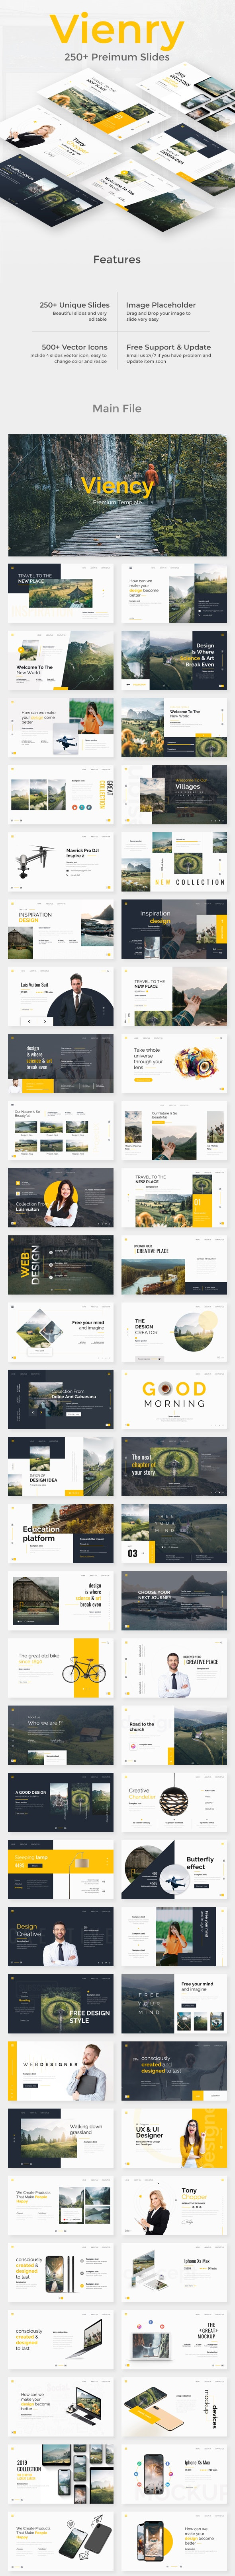 Viency Premium Powerpoint Template - Creative PowerPoint Templates